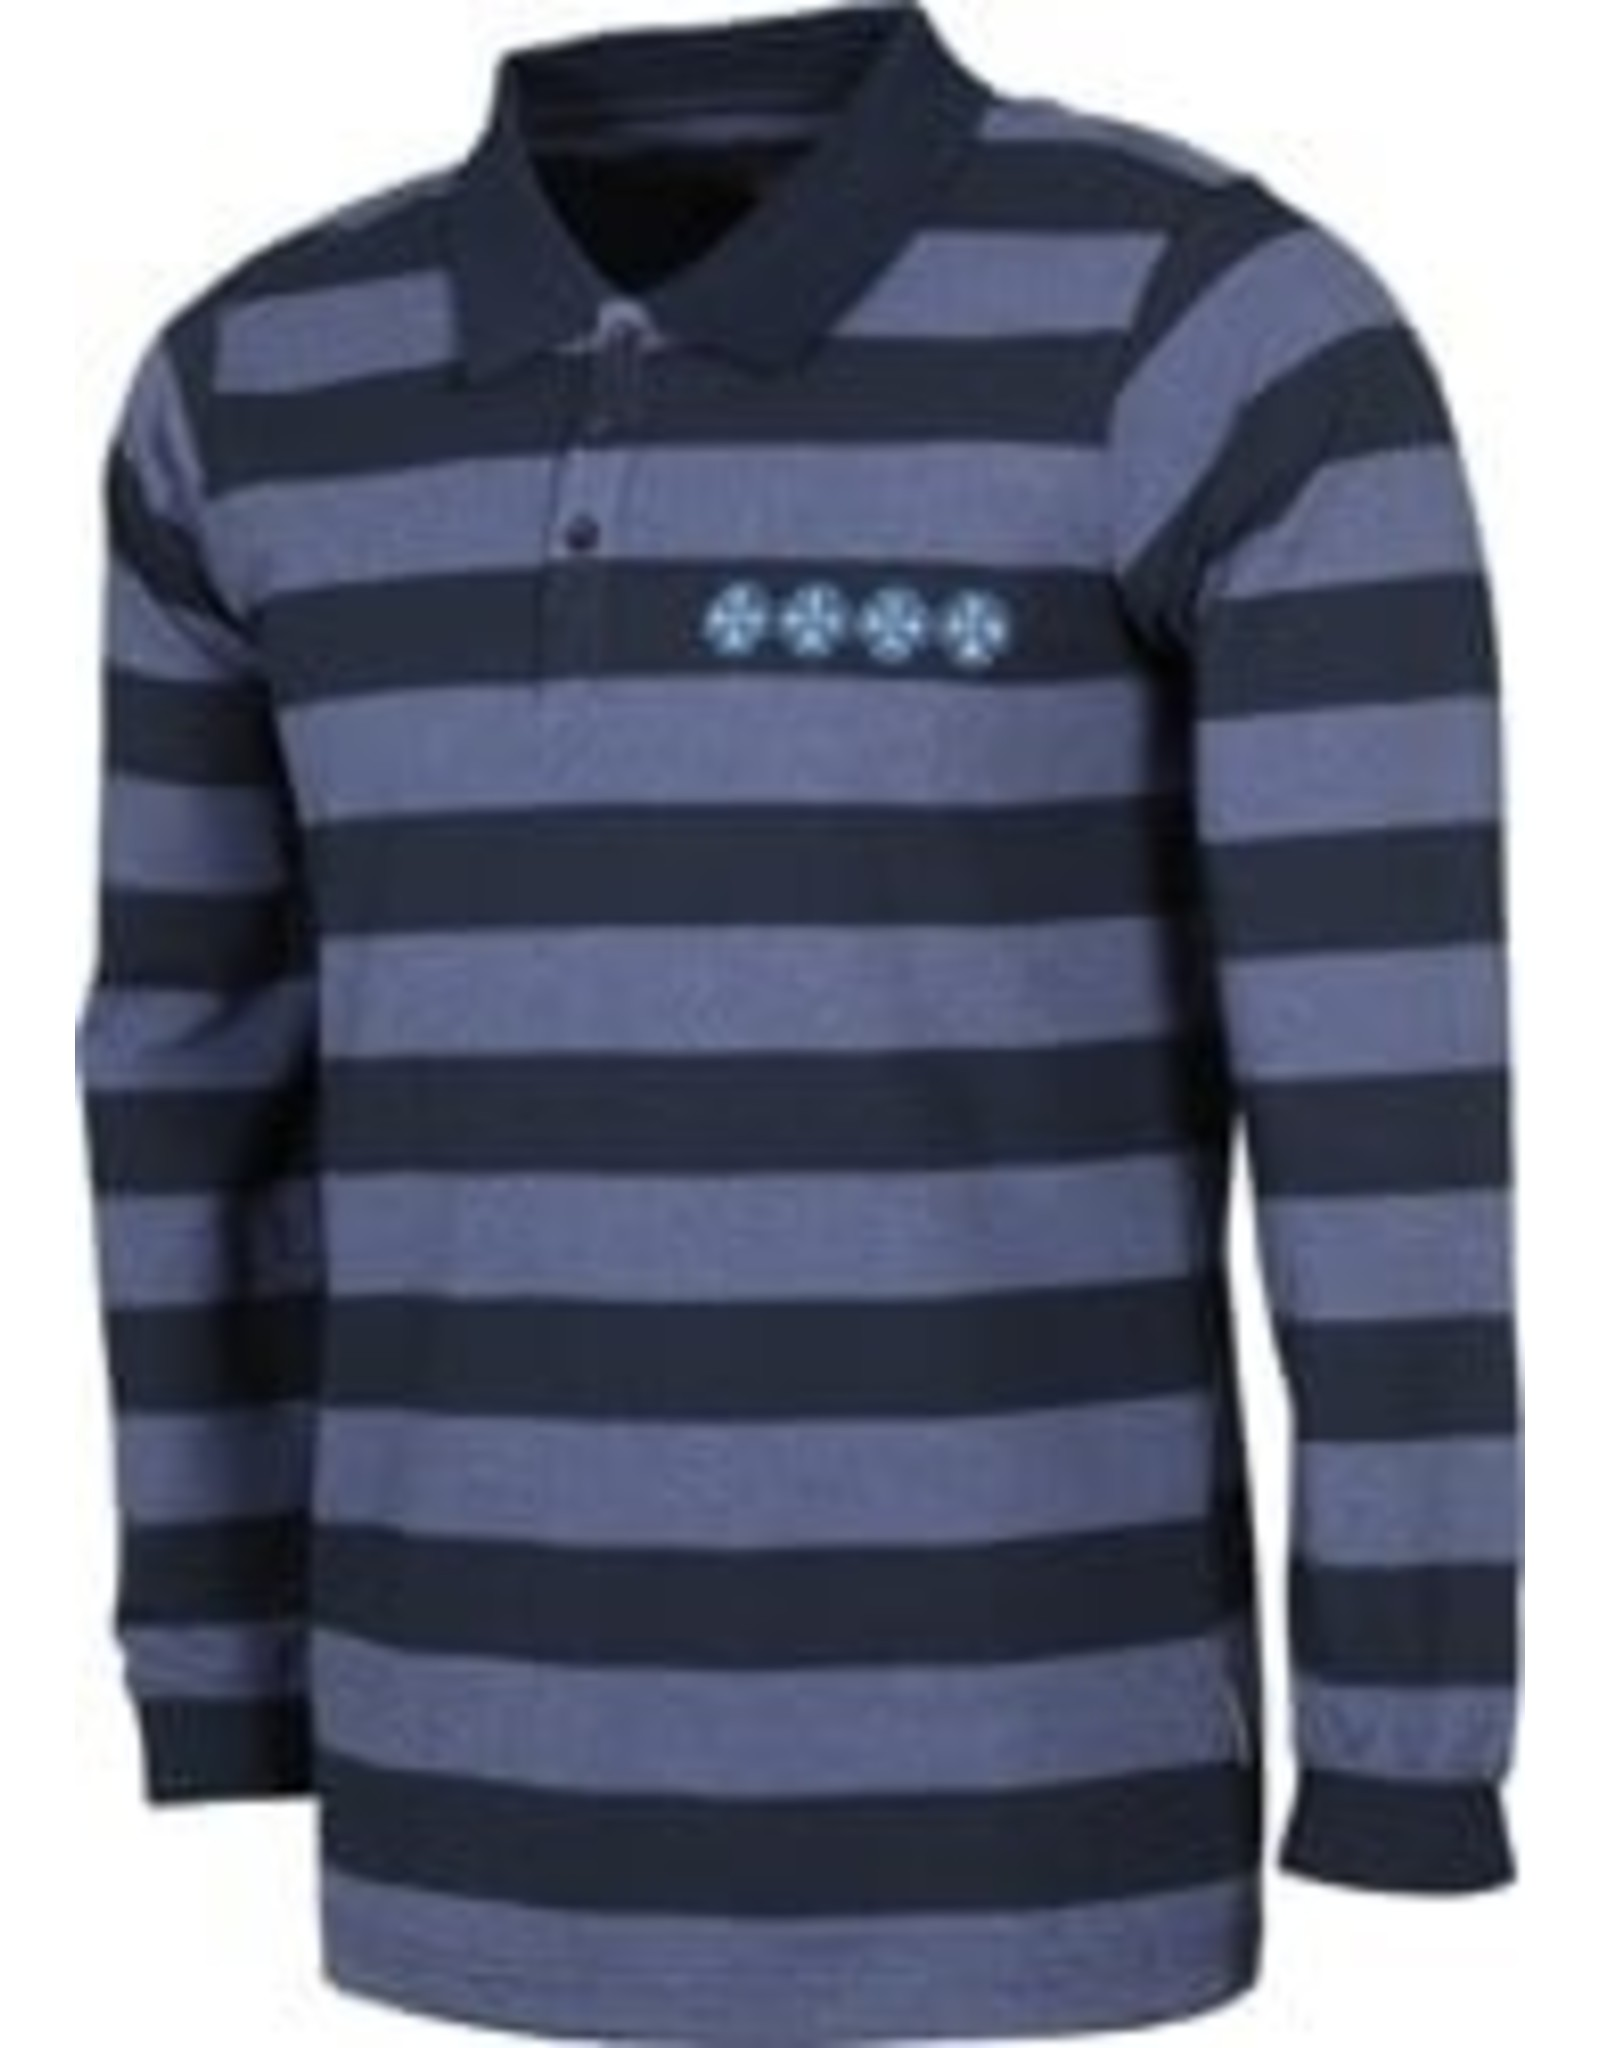 INDEPENDENT INDEPENDENT - BAR CROSS L/S POLO CHAIN - NVY -